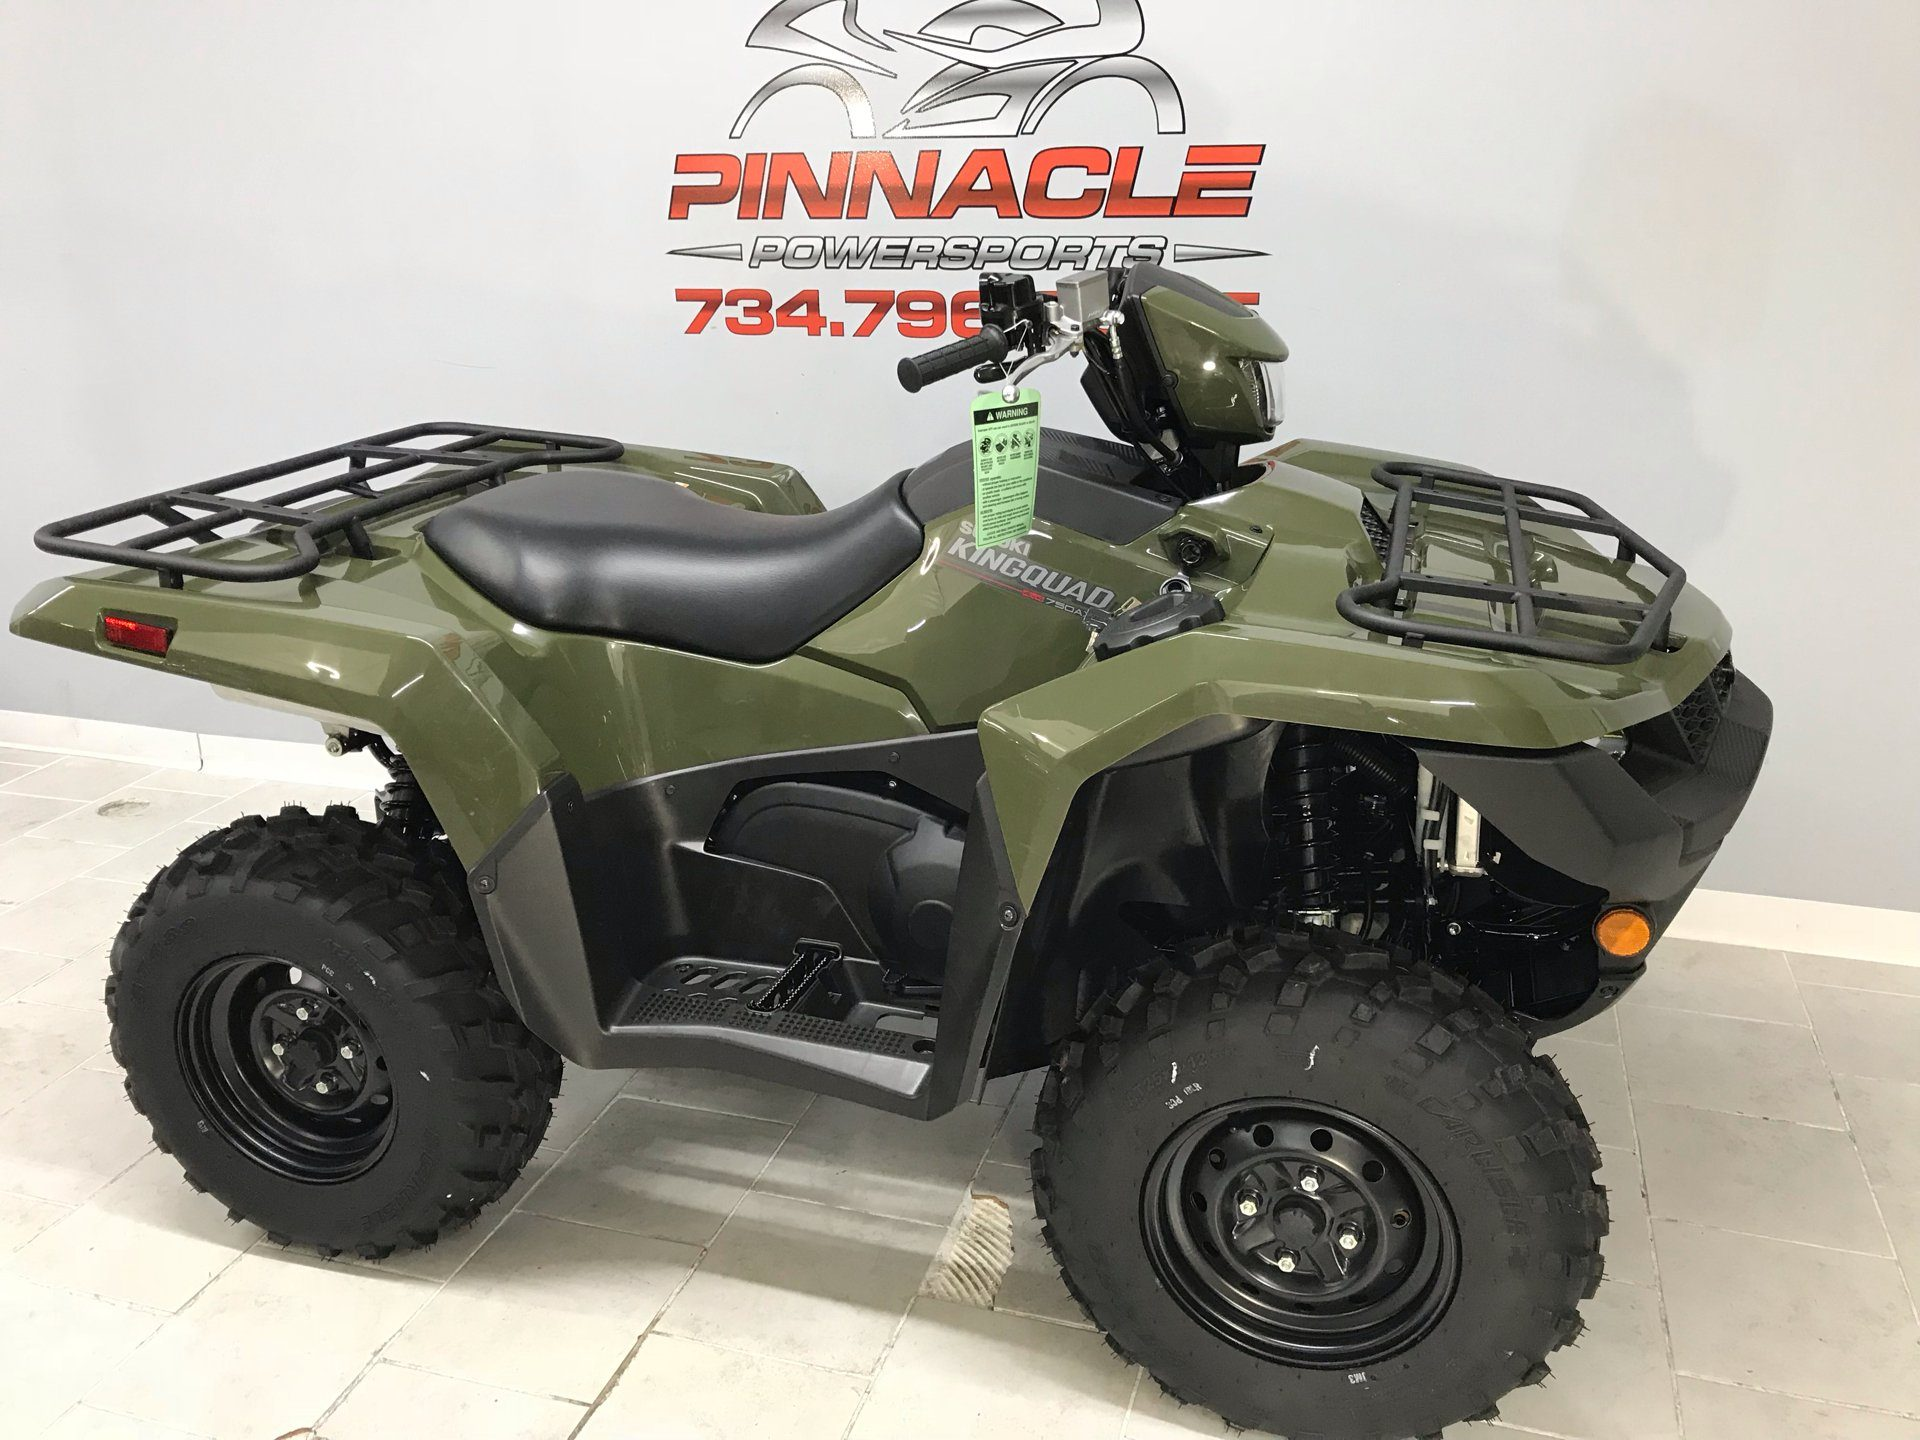 2020 Suzuki KingQuad 500AXi in Belleville, Michigan - Photo 2